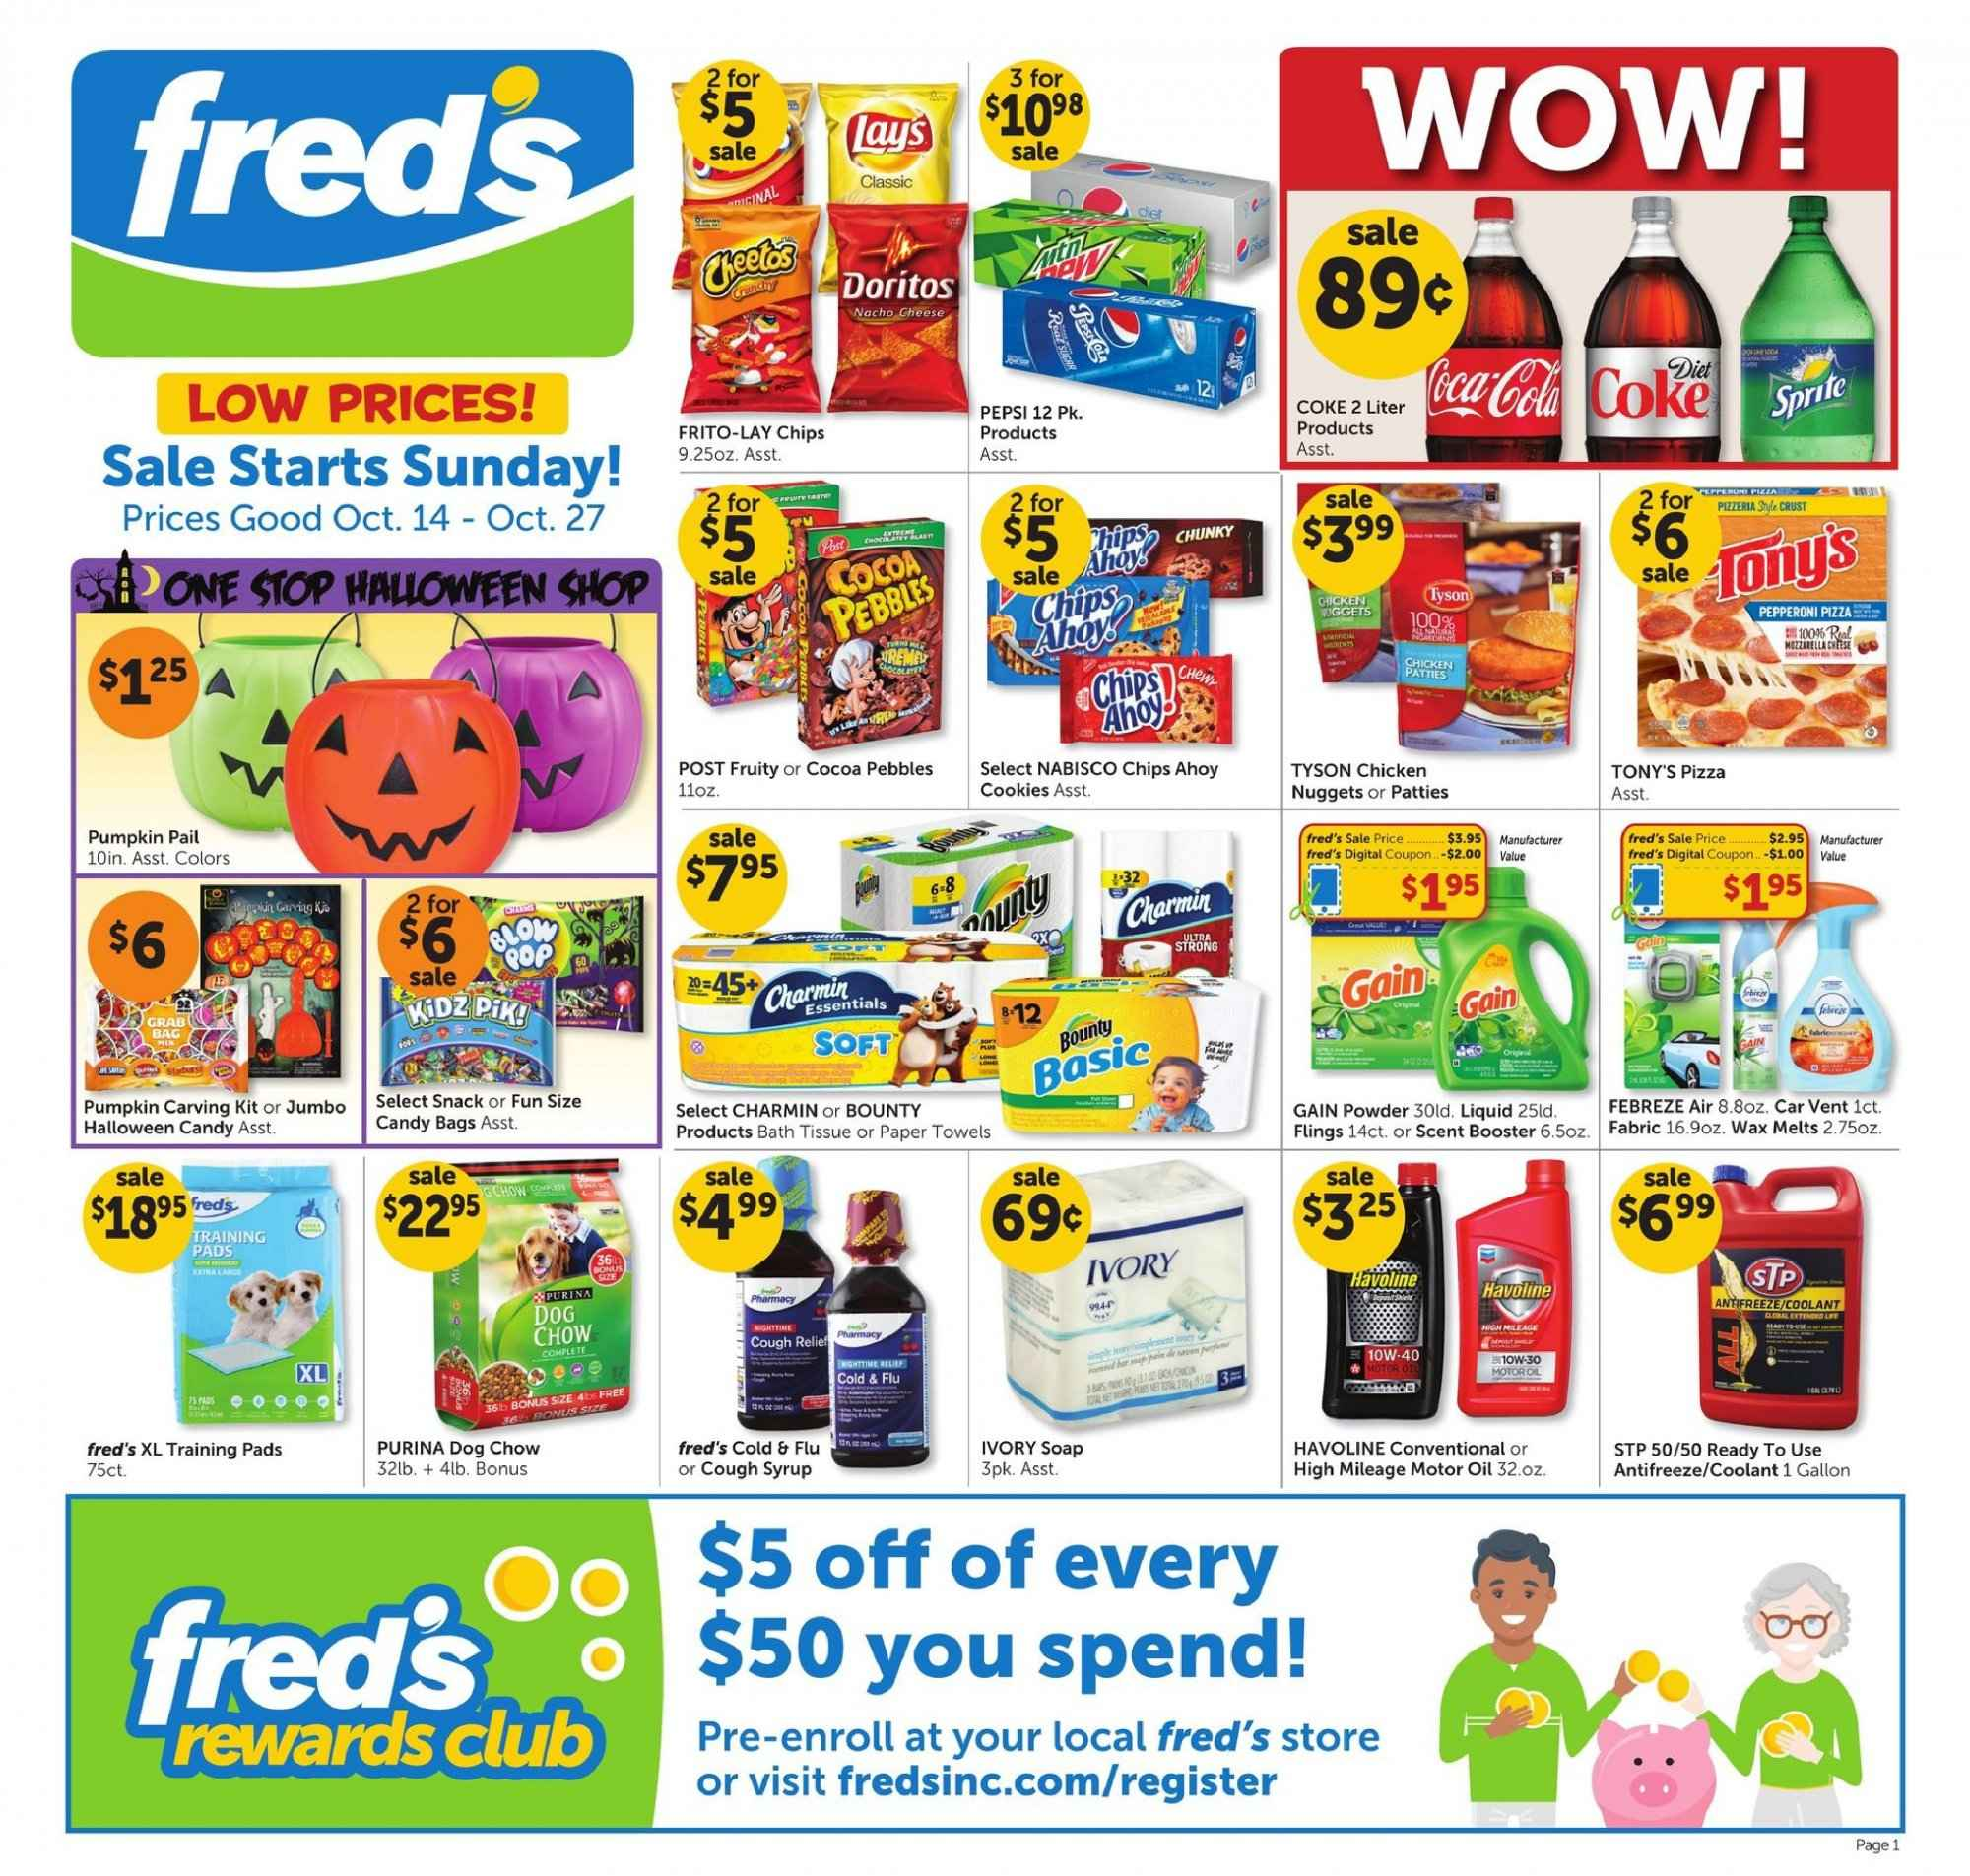 fred's Flyer - 10.14.2018 - 10.27.2018 - Sales products - bag, bath, bath tissue, cocoa, cookies, dog chow, doritos, cold & flu, febreze, gain, motor oil, towel, pizza, powder, pumpkin, purina, chicken, paper towel, pepperoni, pepsi, pads, chow, chips. Page 1.